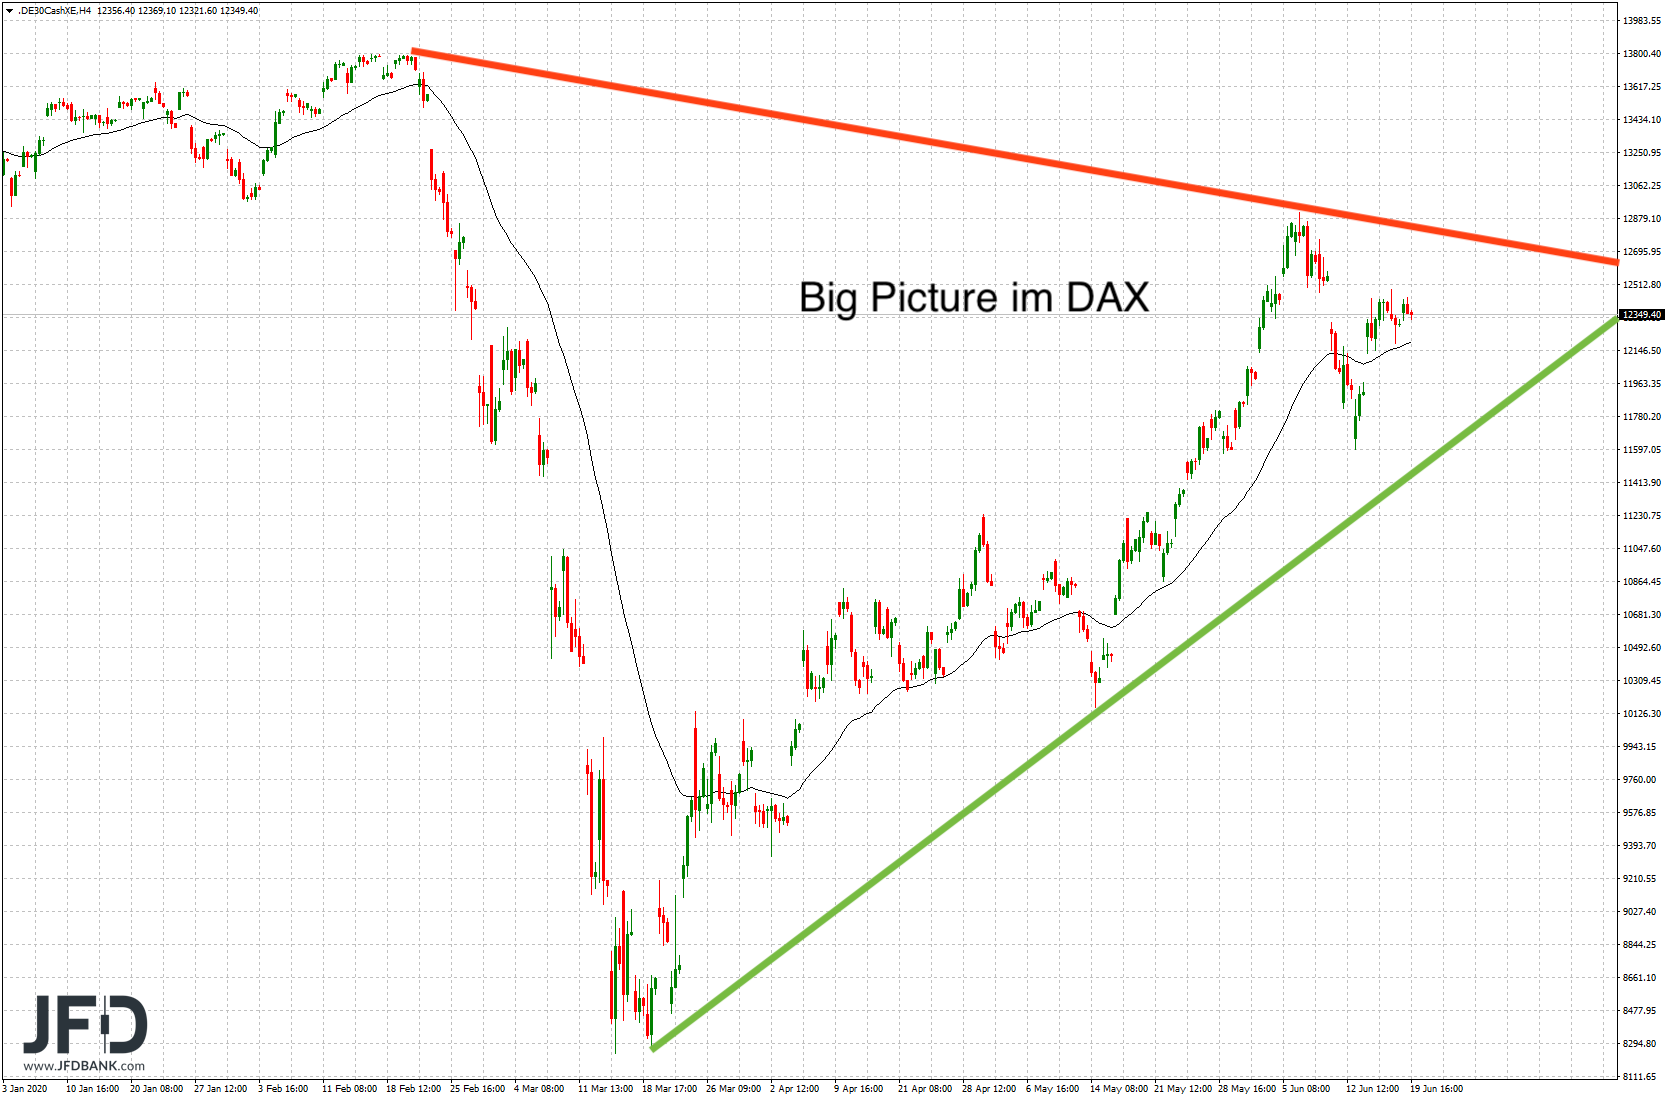 Big Picture im DAX